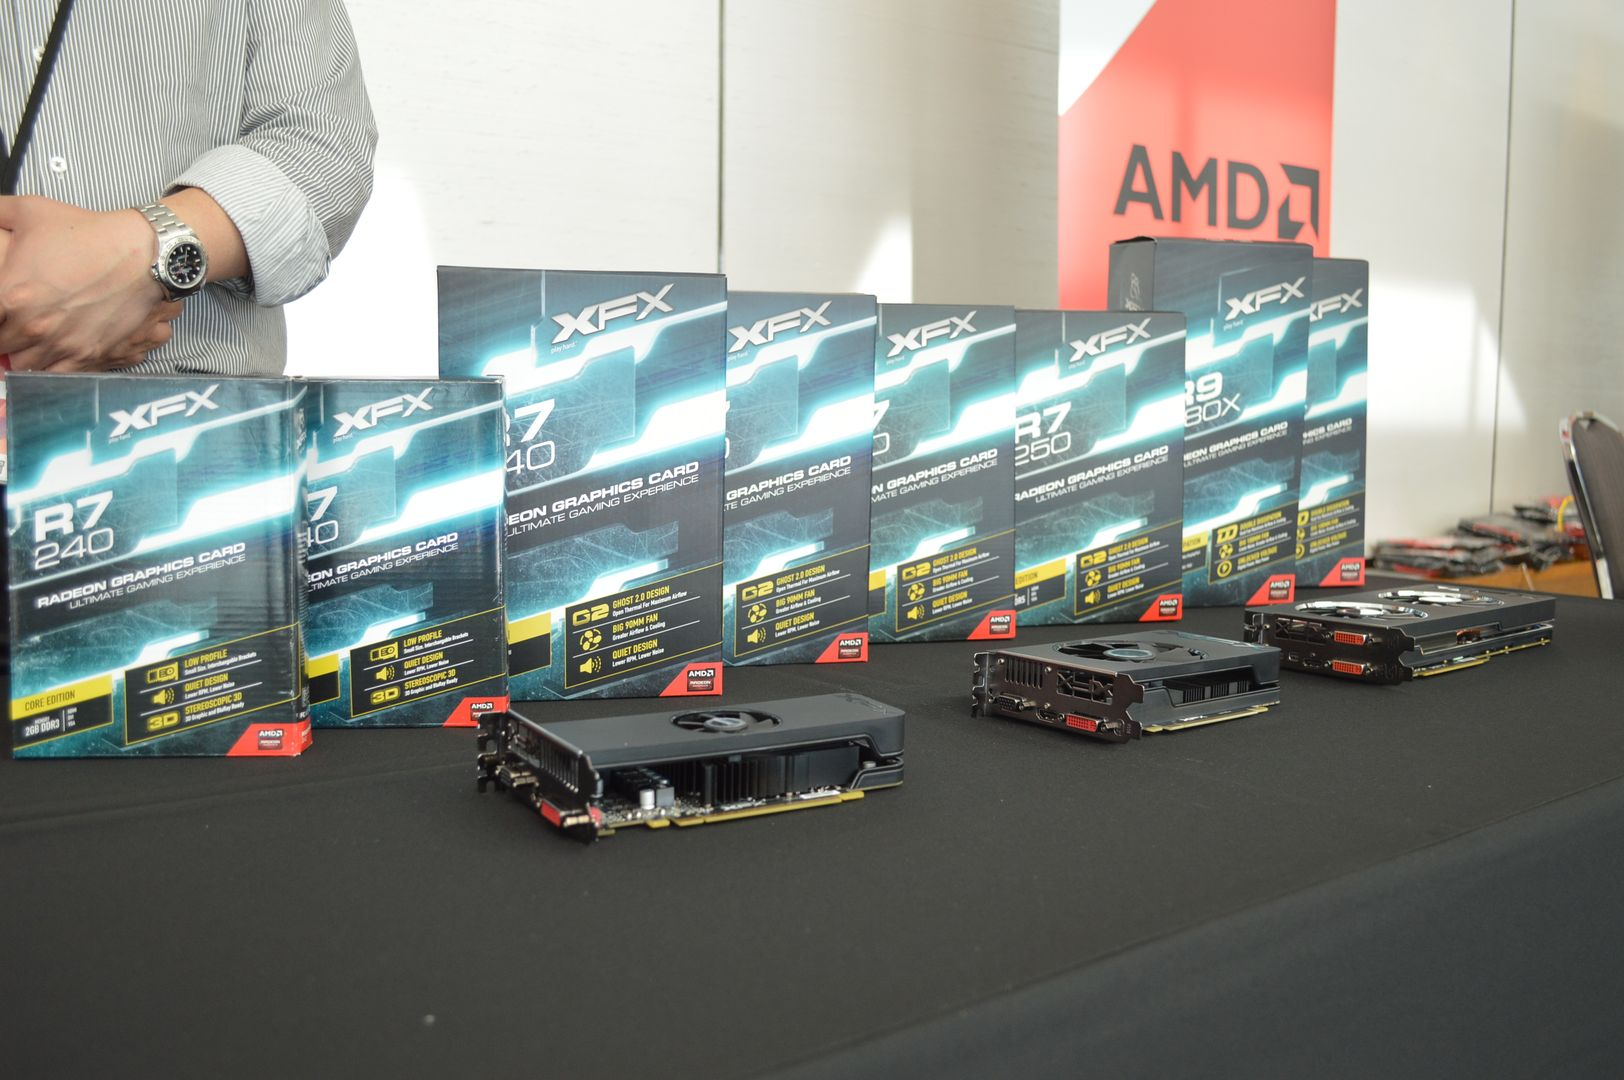 Entire AMD Radeon R9 280X, Radeon R9 270X And Radeon R7 Custom GPU